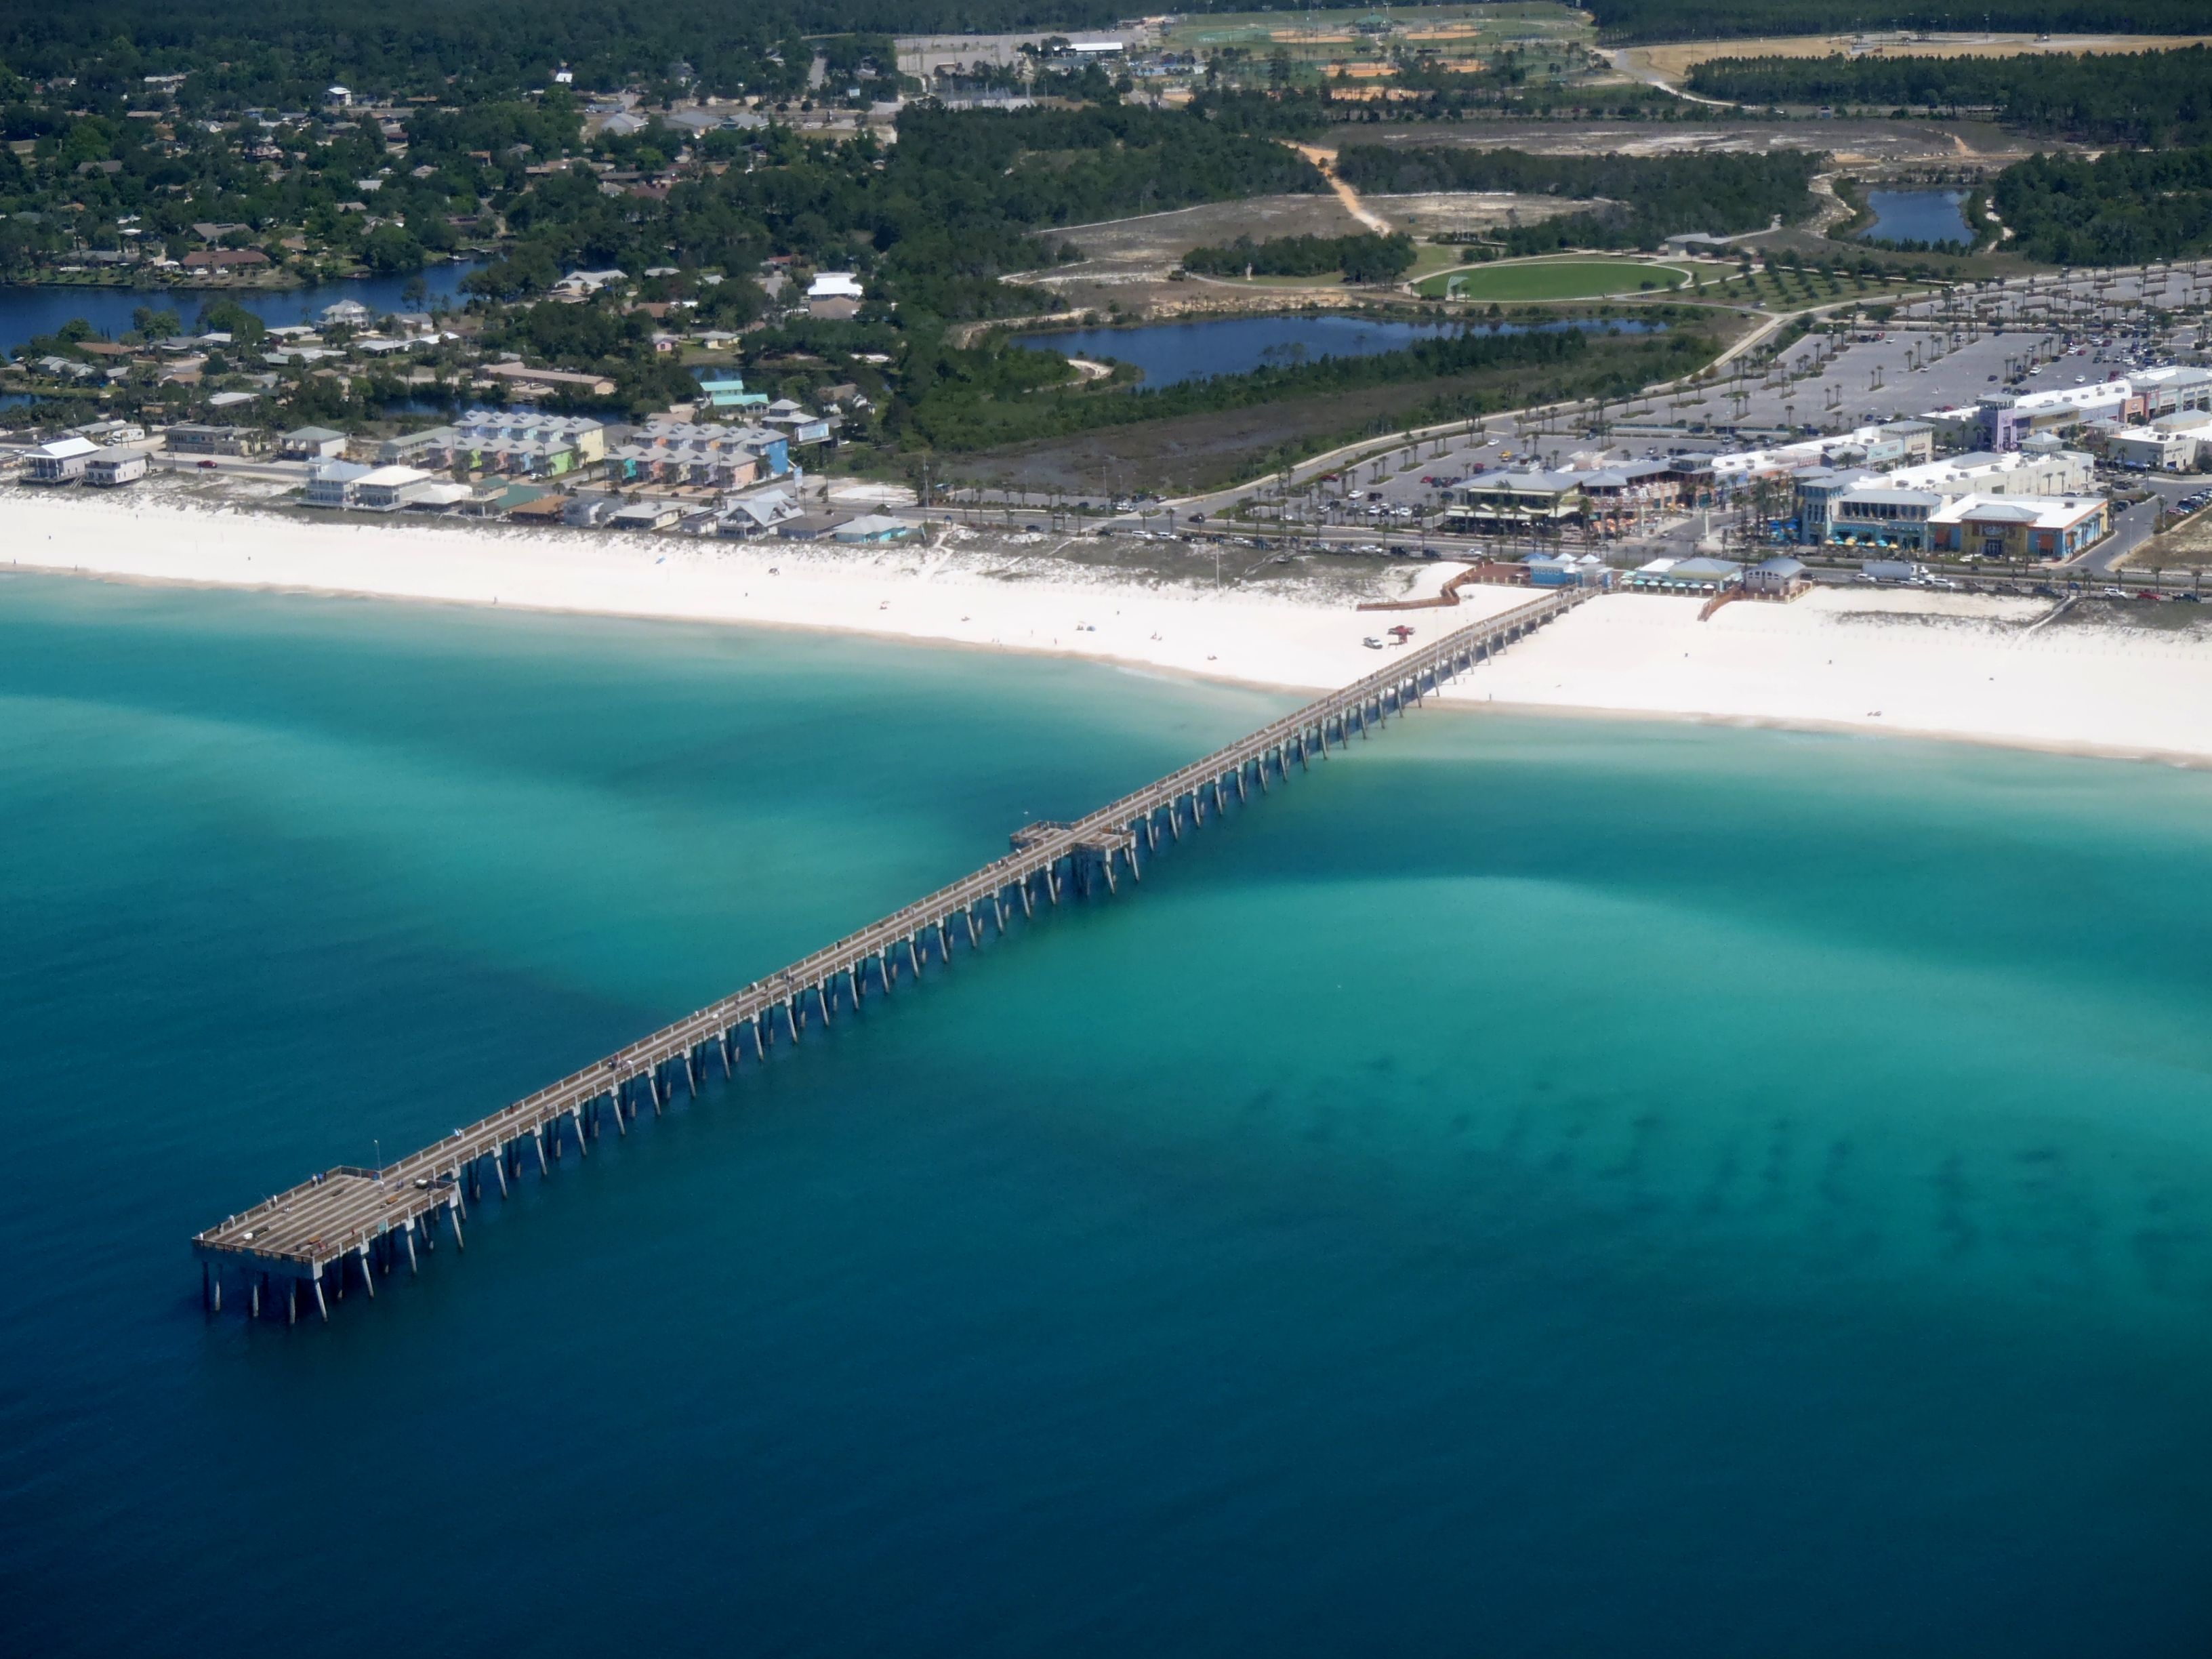 M b miller county pier offering fantastic fishing and for Fishing resorts in florida